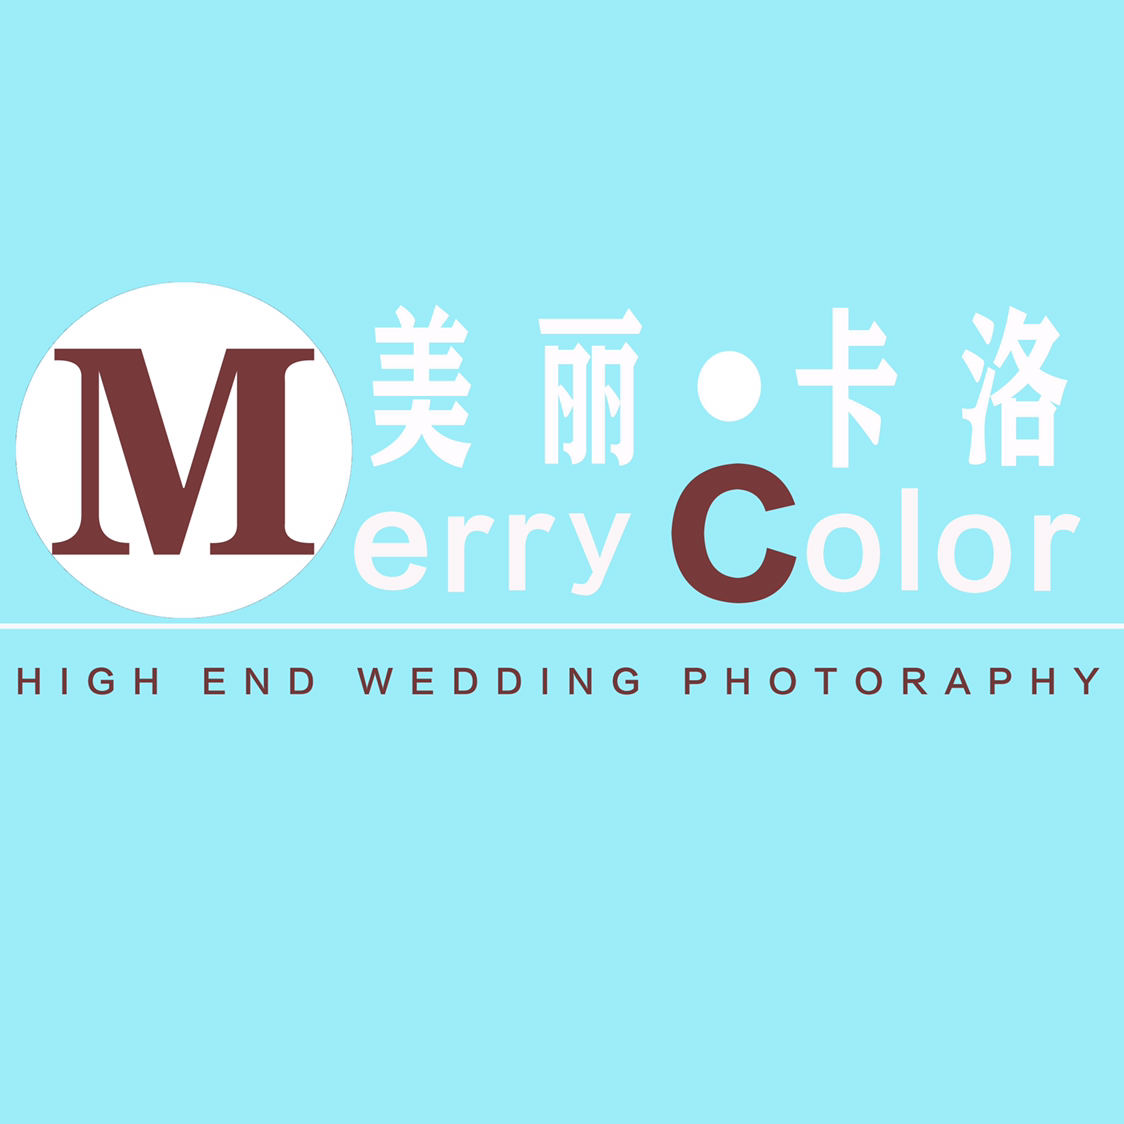 merry color 美丽卡洛